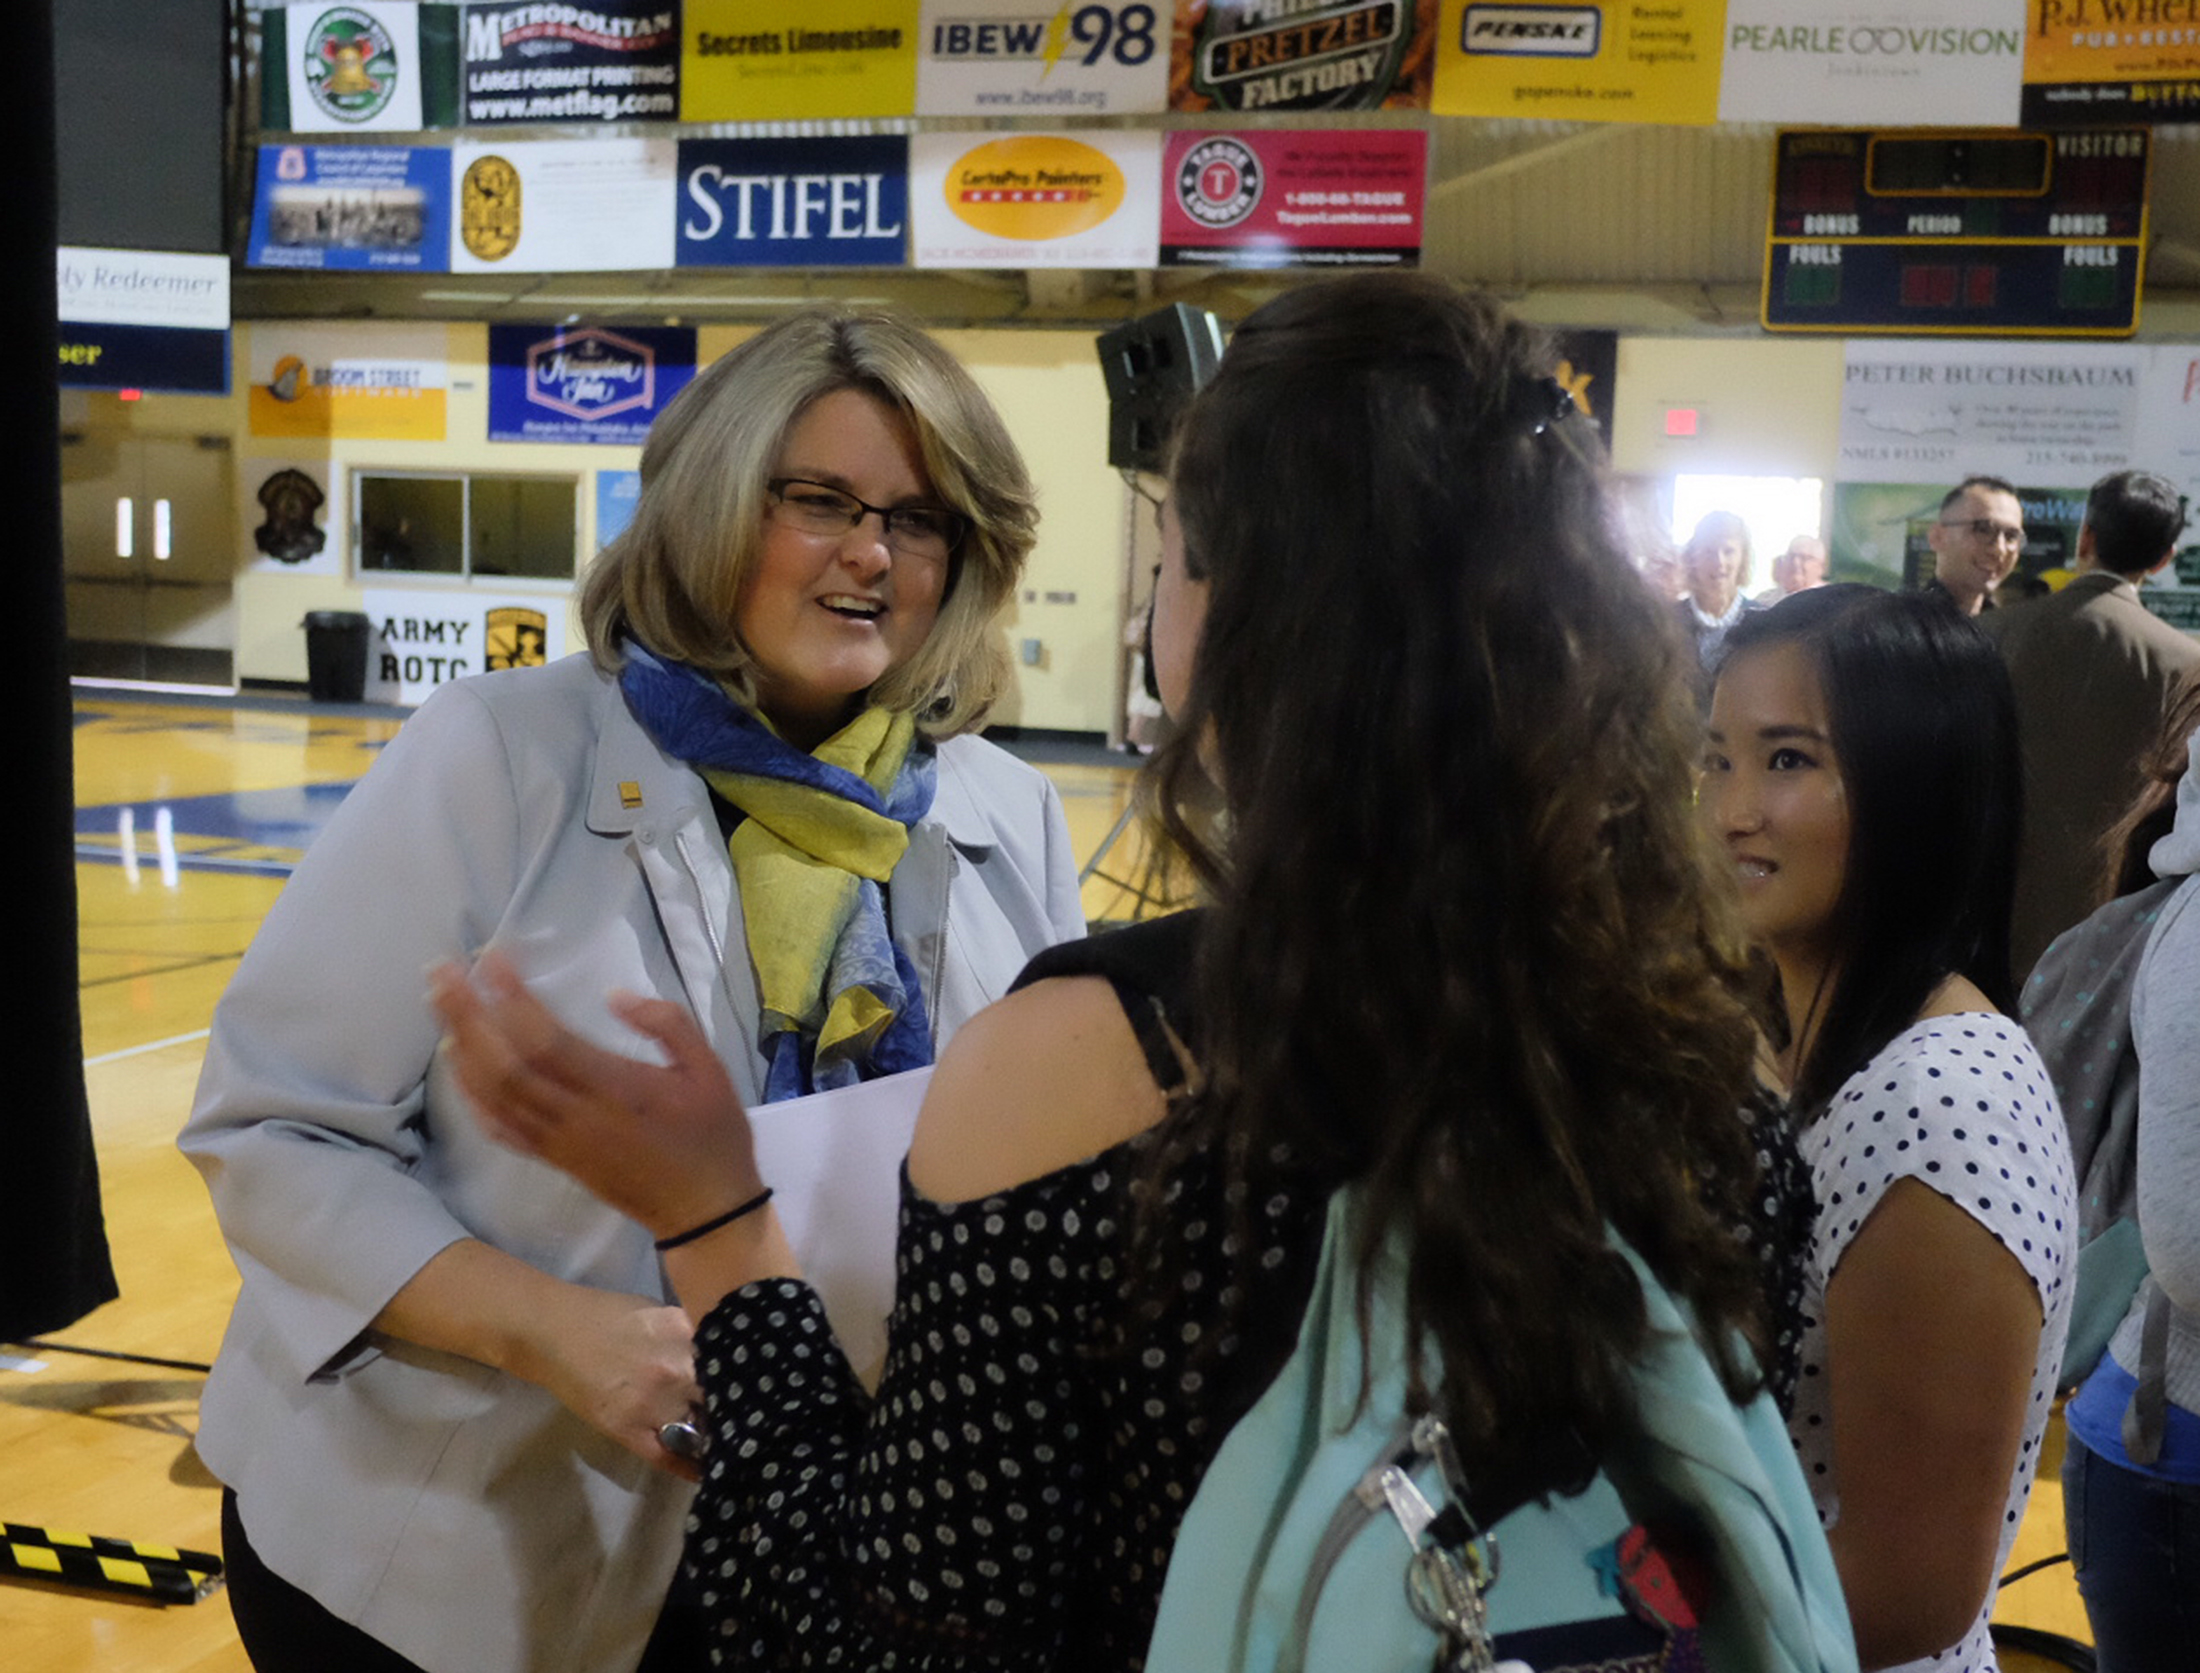 Tuesday September 27, 2016 LaSalle University president Colleen Hanycz happily greets juniors Marissa Beaver , , center, and Emily Paynter, right after announcing a tuition reset Tuesday. Ed Hille / Staff Photographer